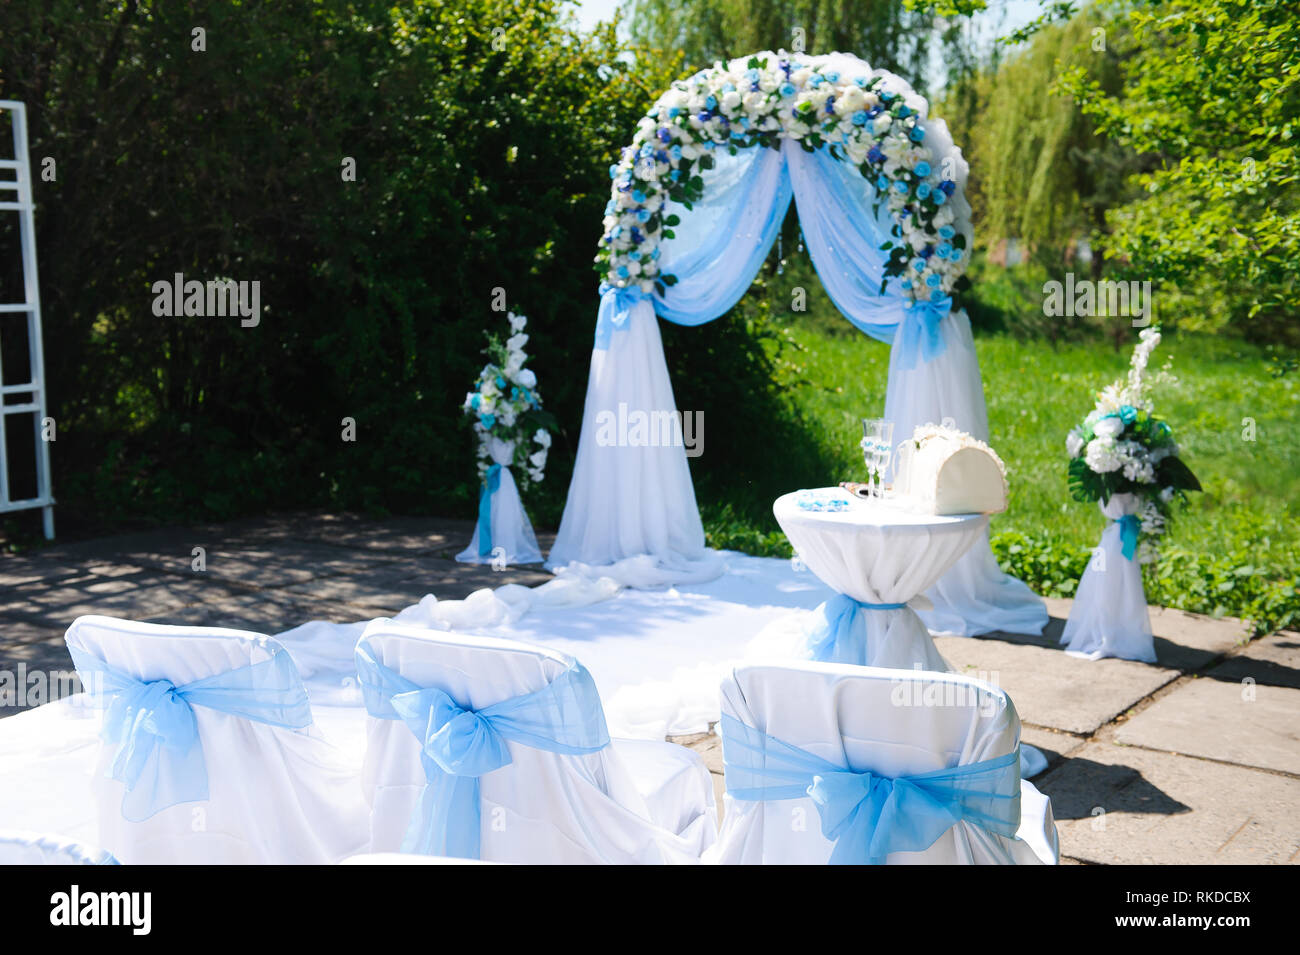 Wedding Decorations At Ceremony Beautiful Decor Wedding